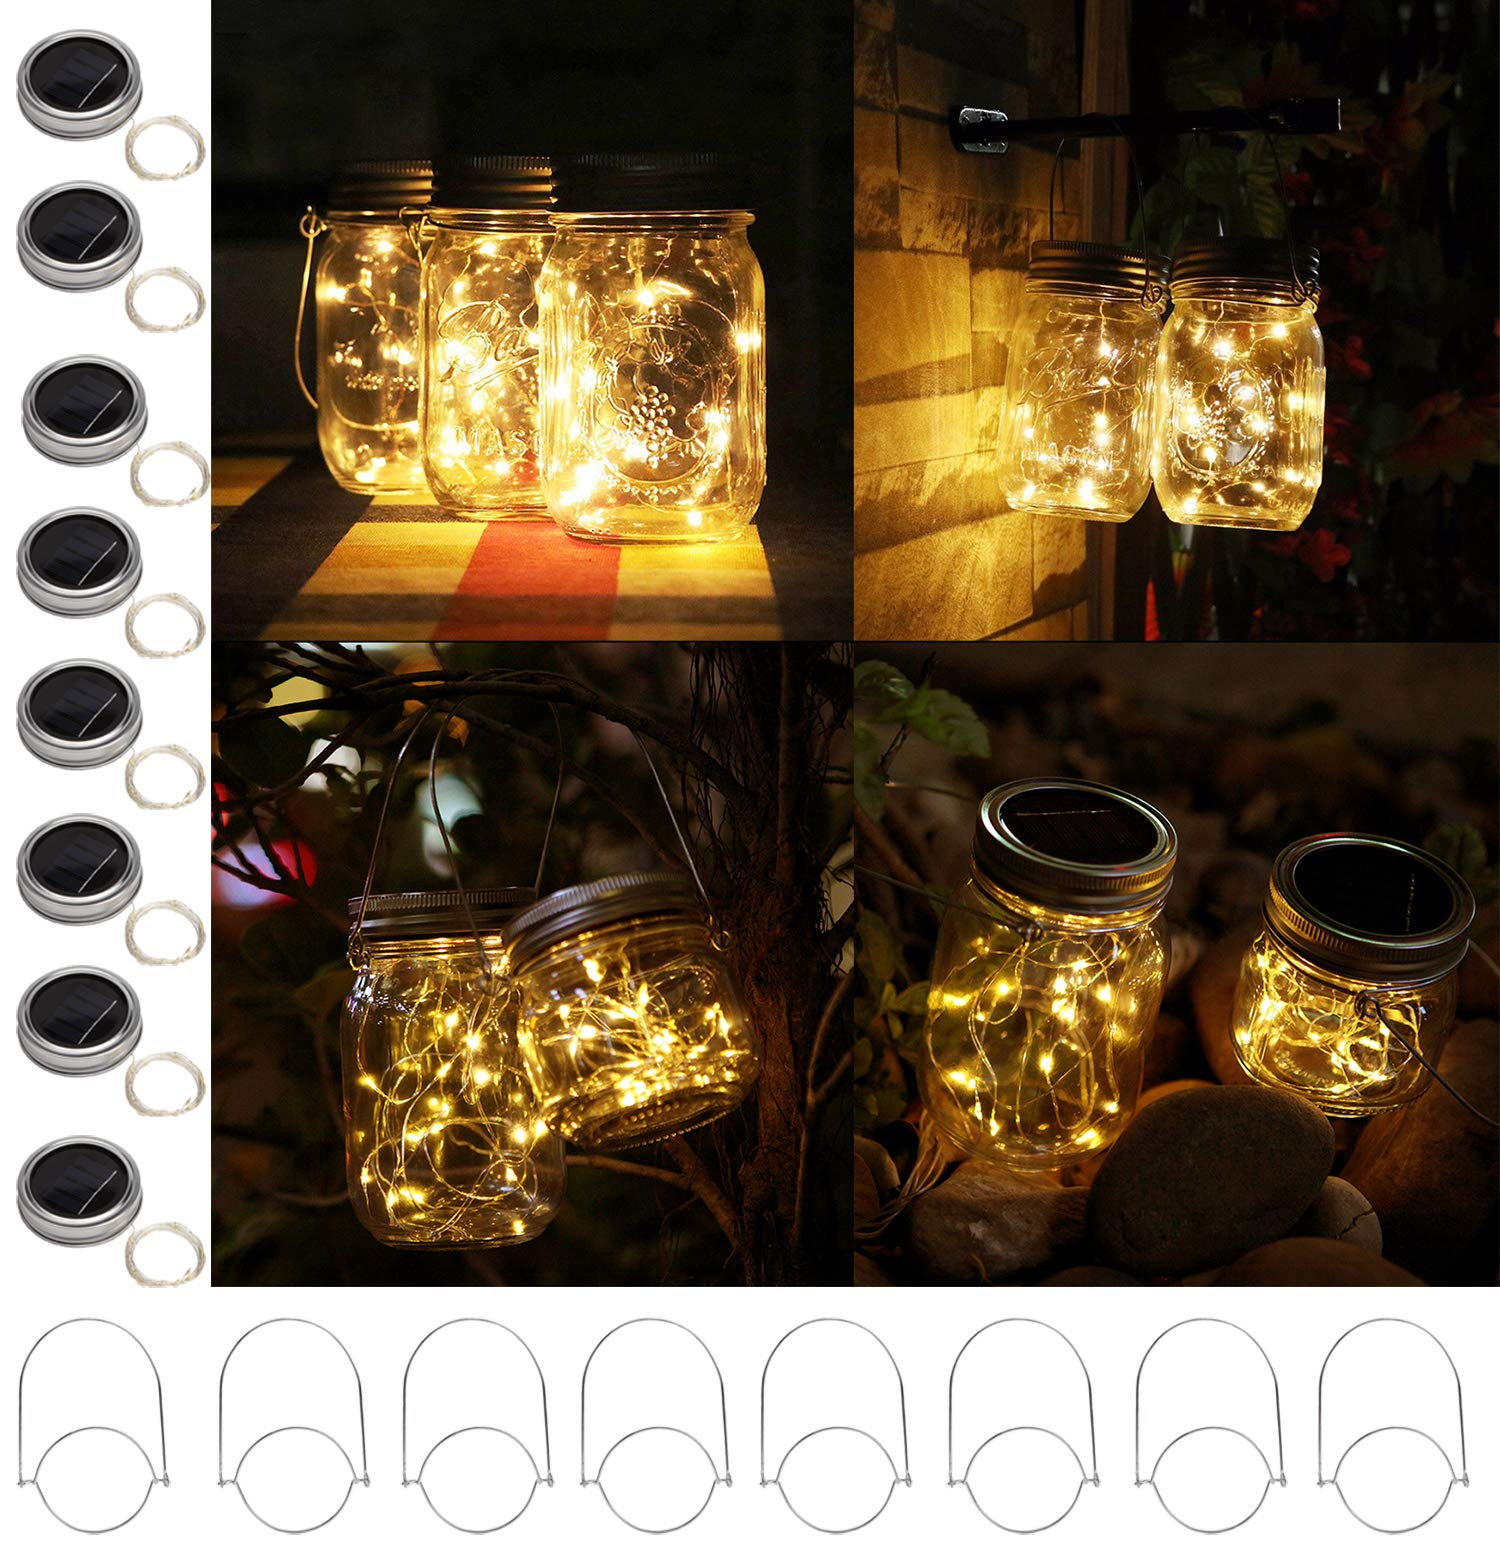 """8 Pack Solar Mason Jar Lights with 8 Handles, 10 Led String Fairy Firefly Lights Lids Insert for Regular Mouth Jars, Mason Jar,Patio,Lawn,Garden Decor (8, Warmwhite) - 8 Pack of Solar Mason Jar Lid Insert with 8 Handles (Mason Jar Not Included), 10 Led Bulbs, 37.79inch/96CM long, Lid Diameter Size: Outer 2.76 inch(70mm)/Insert 2.17 inch(55mm), suitable for any regular standard mouth mason jars,like all major brands: ball,kerr,golden harvest,kilner and generic mason jars Solar Powered LED Fairy Mason Jar Lantern, with 2V 70mA efficient solar panel,1.2 V 600mA Rechargeable AAA Battery Included.If not a bright day, AAA batteries can be used as a back-up power. Charging Methods:Charged automatically when put Solar-powered Mason Jar Lights directly under the sunlight(slide the switch to the """"ON"""" position when charging).Generally charged in the sun 6-8h will light up 8-12h. - patio, outdoor-lights, outdoor-decor - 81SVsAI0pDL -"""